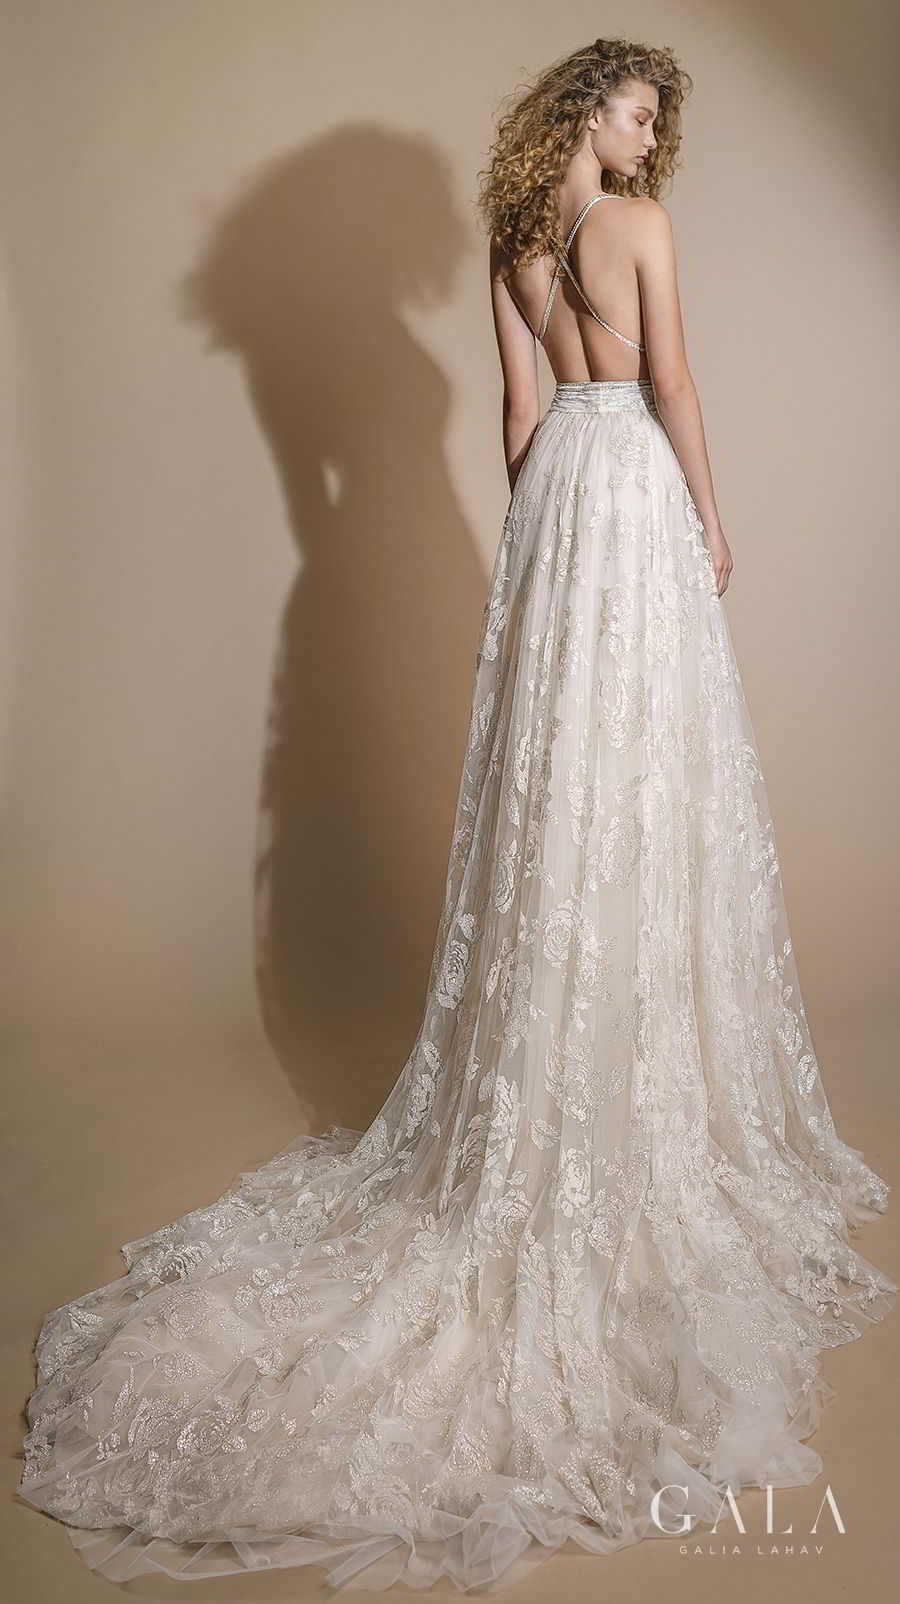 galia lahav gala 2019 bridal sleeveless with strap deep v neck full embellishment sexy elegant a line wedding dress cross strap back chapel train (106) bv